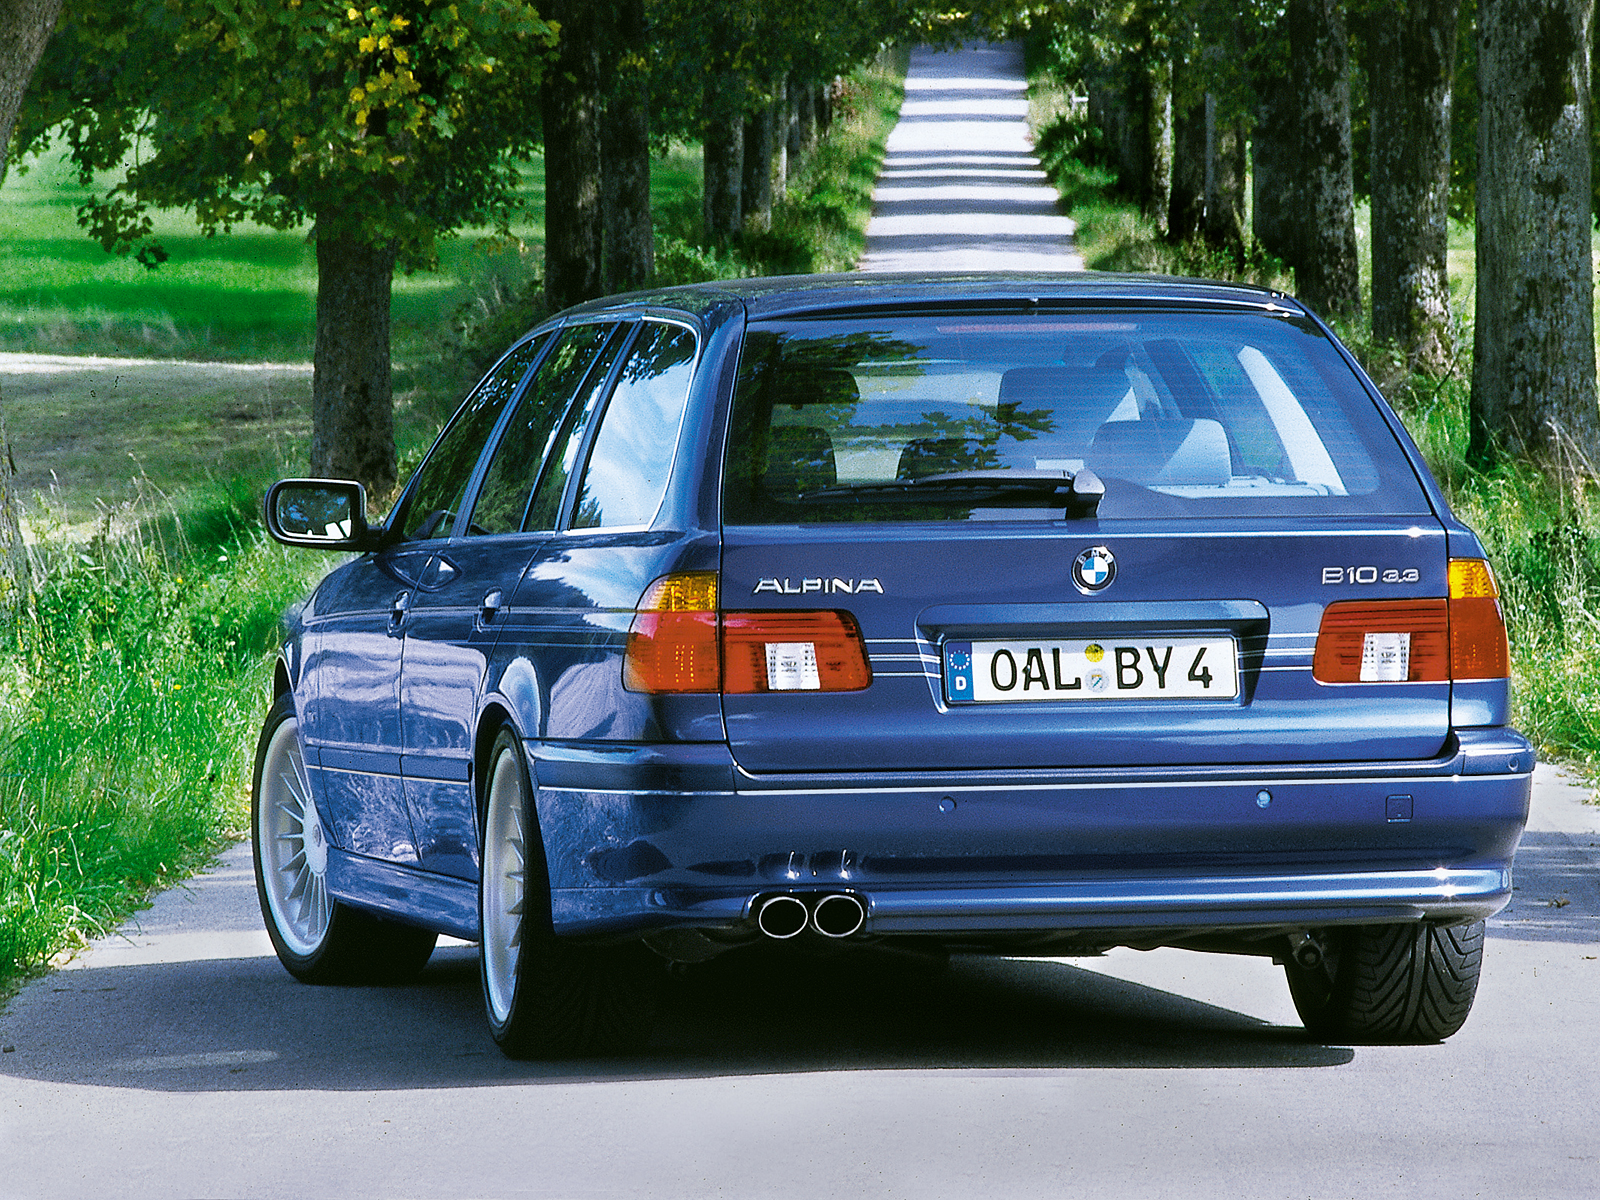 BMW 5 Series E39 ALPINA Automobiles